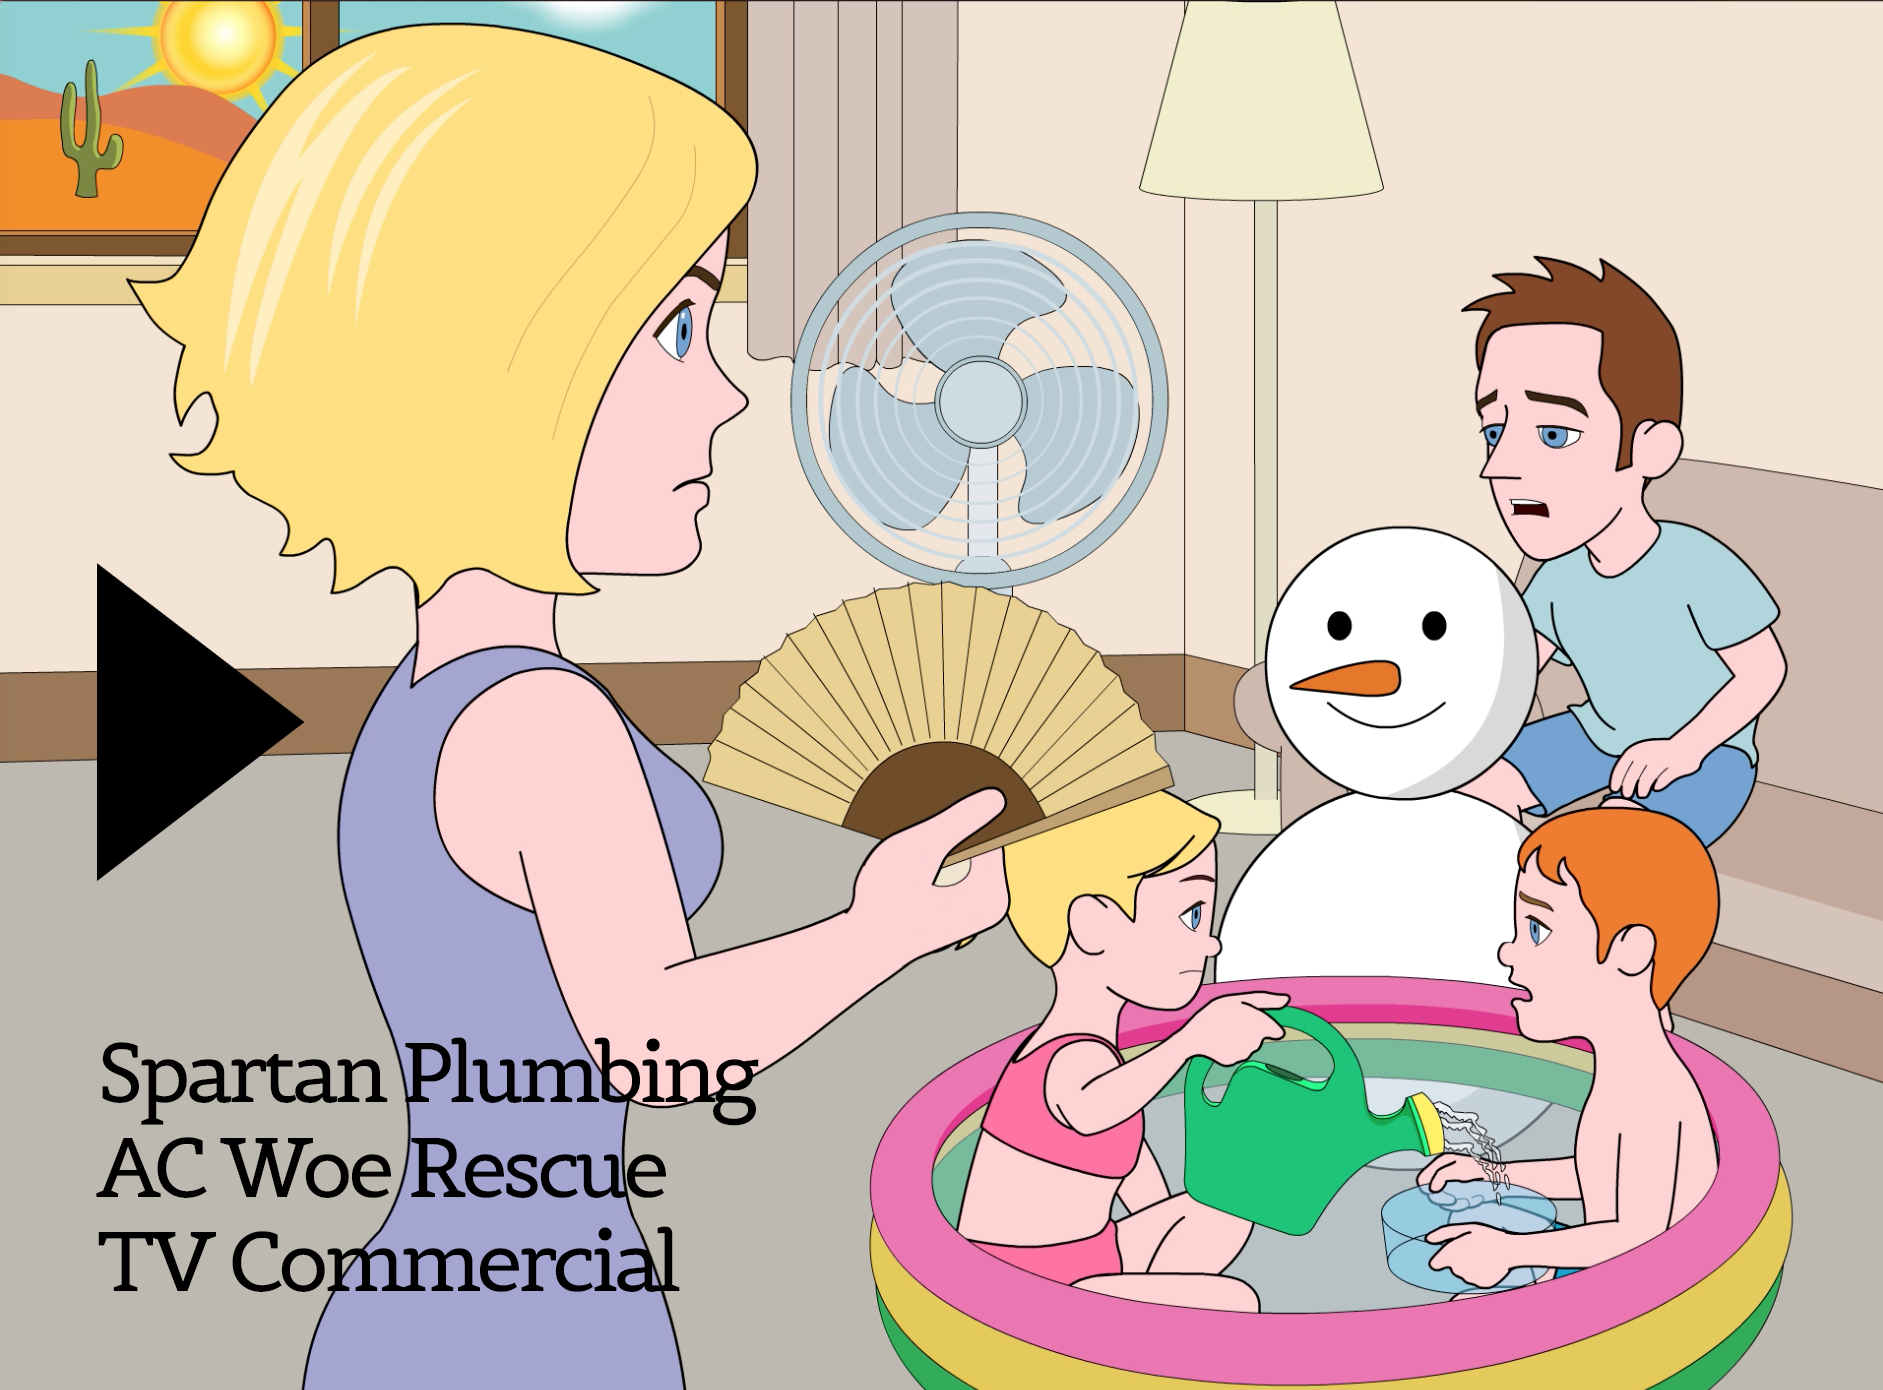 Spartan Plumbing Animated TV Commercial: Indoor Heatwave!